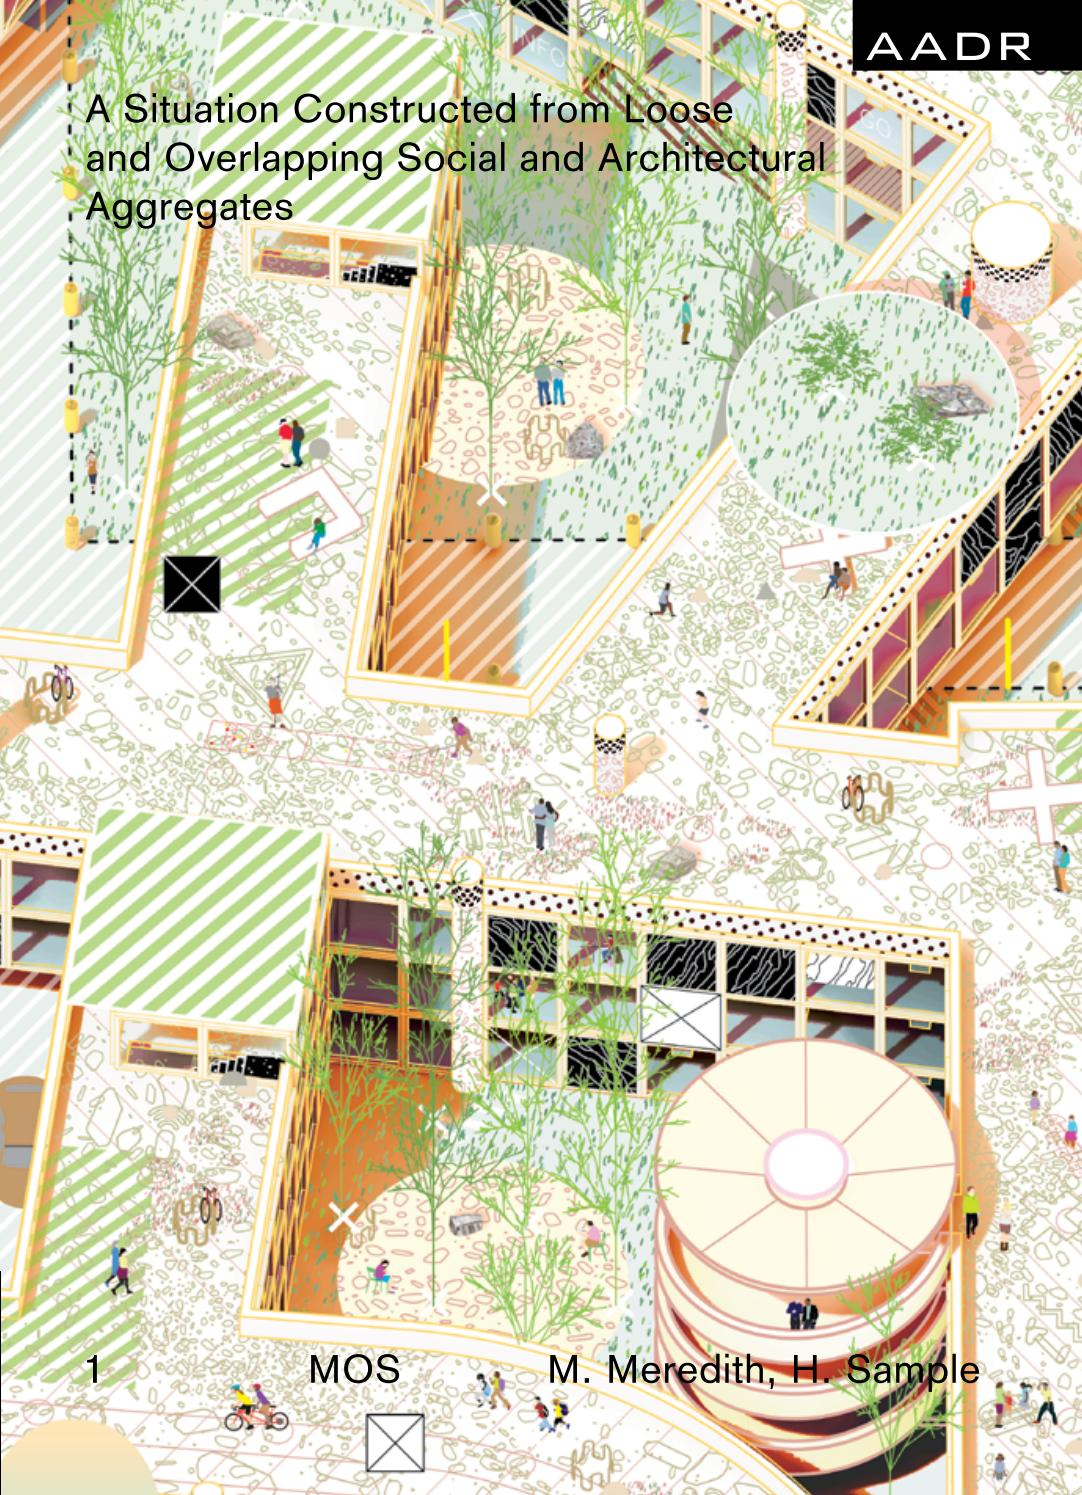 MOS Architects NY From The Venice Architecture Biennale By - Venice biennale 2016 map